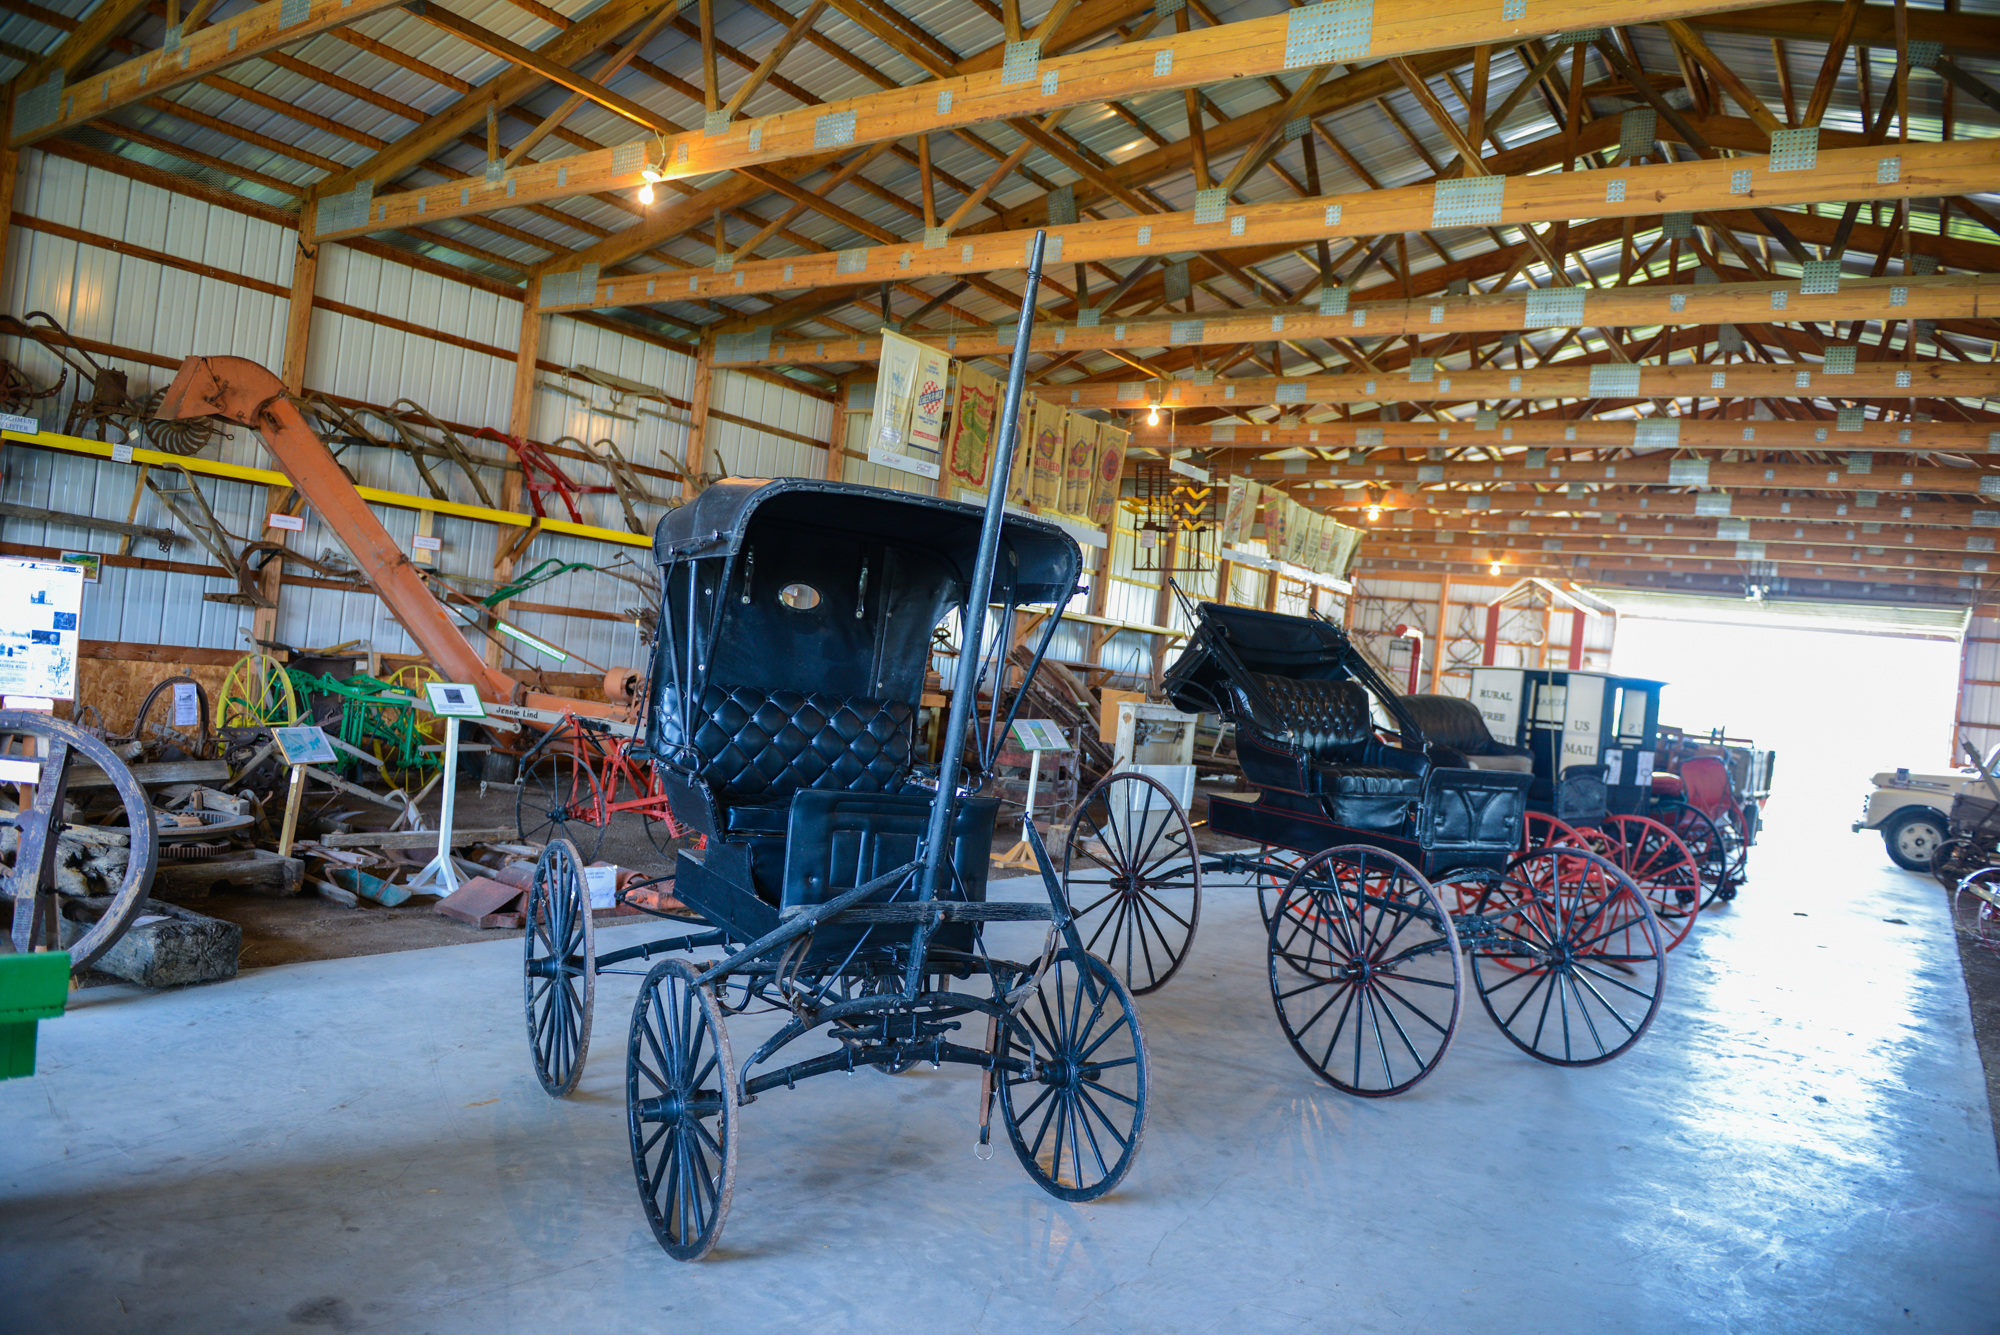 Historic Buggies in Reminisce Building